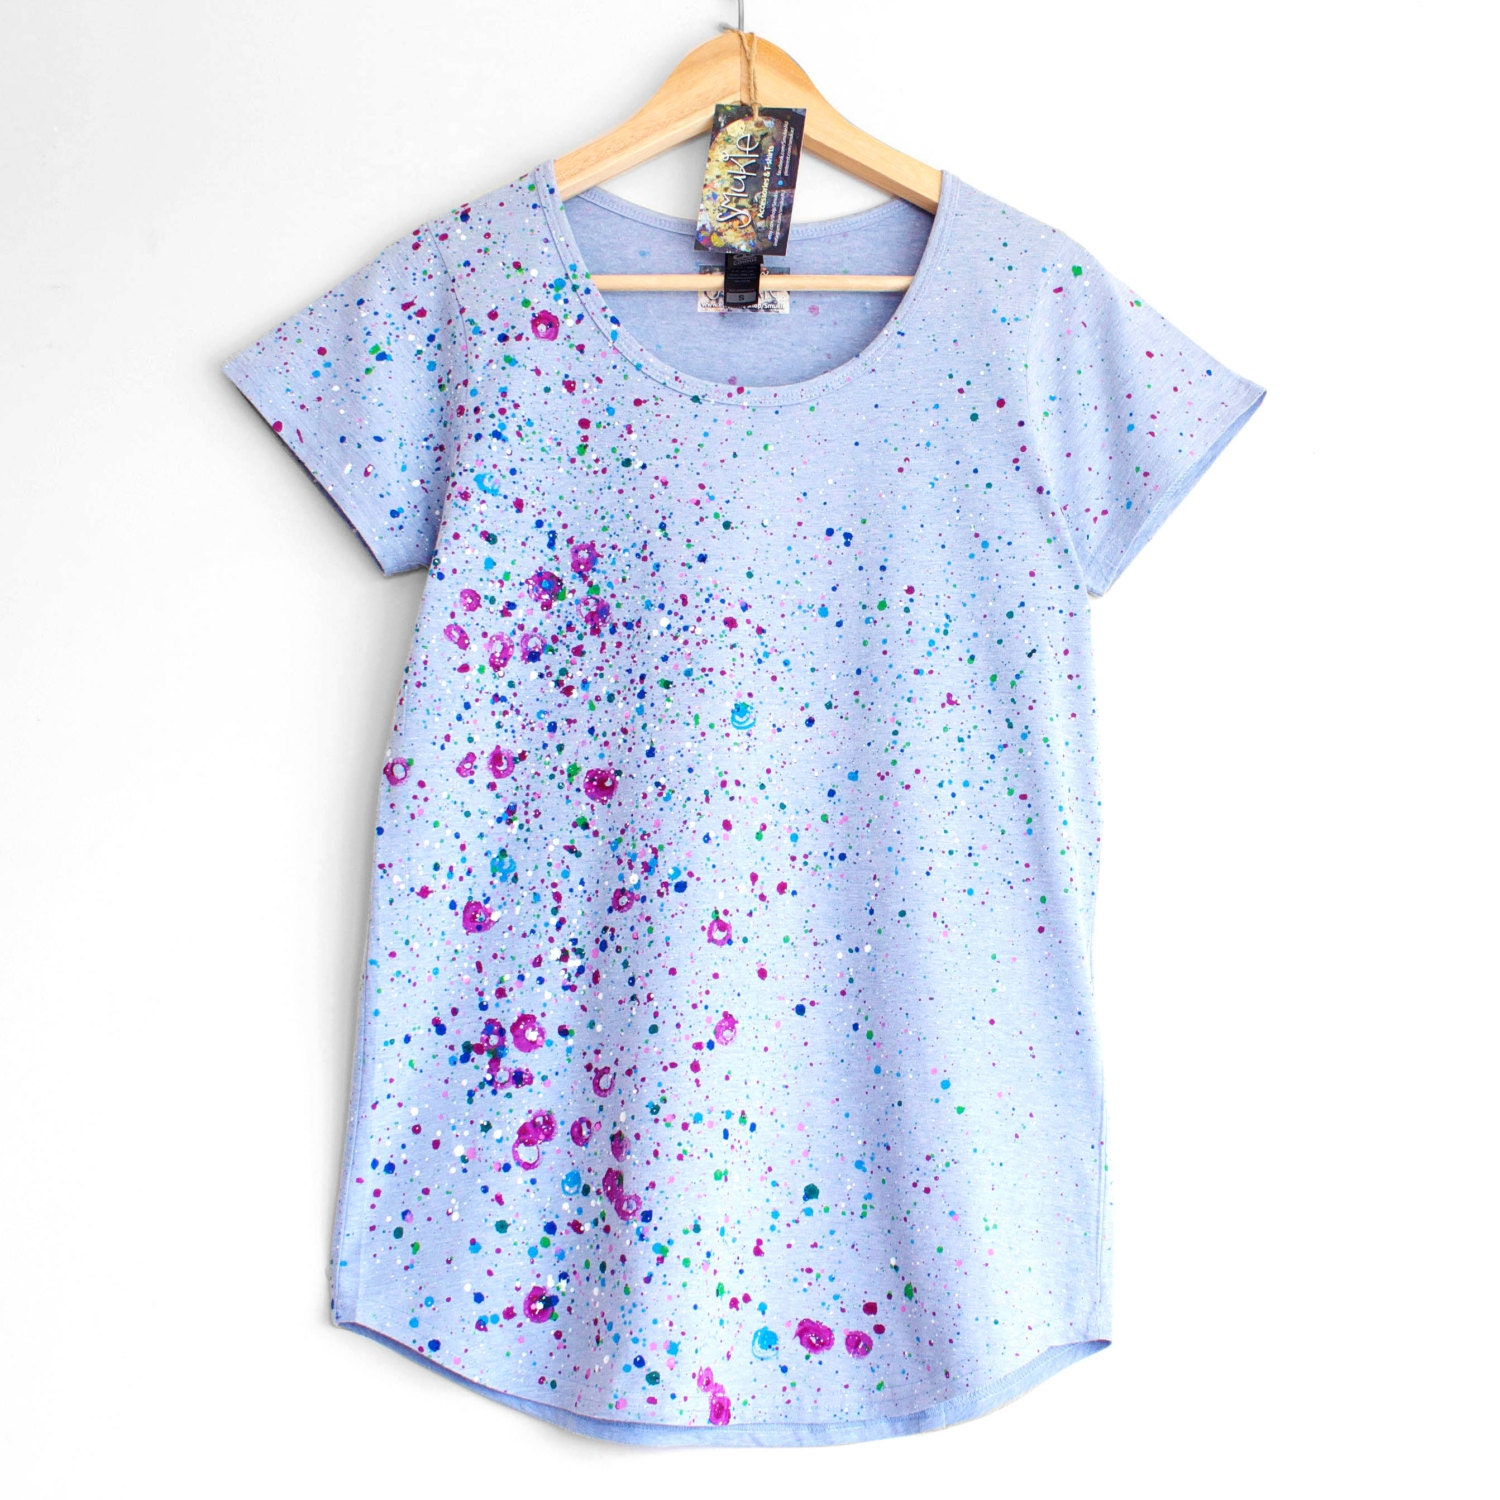 Roses and violets t shirt for woman or girl hand painted for Full hand t shirts for womens